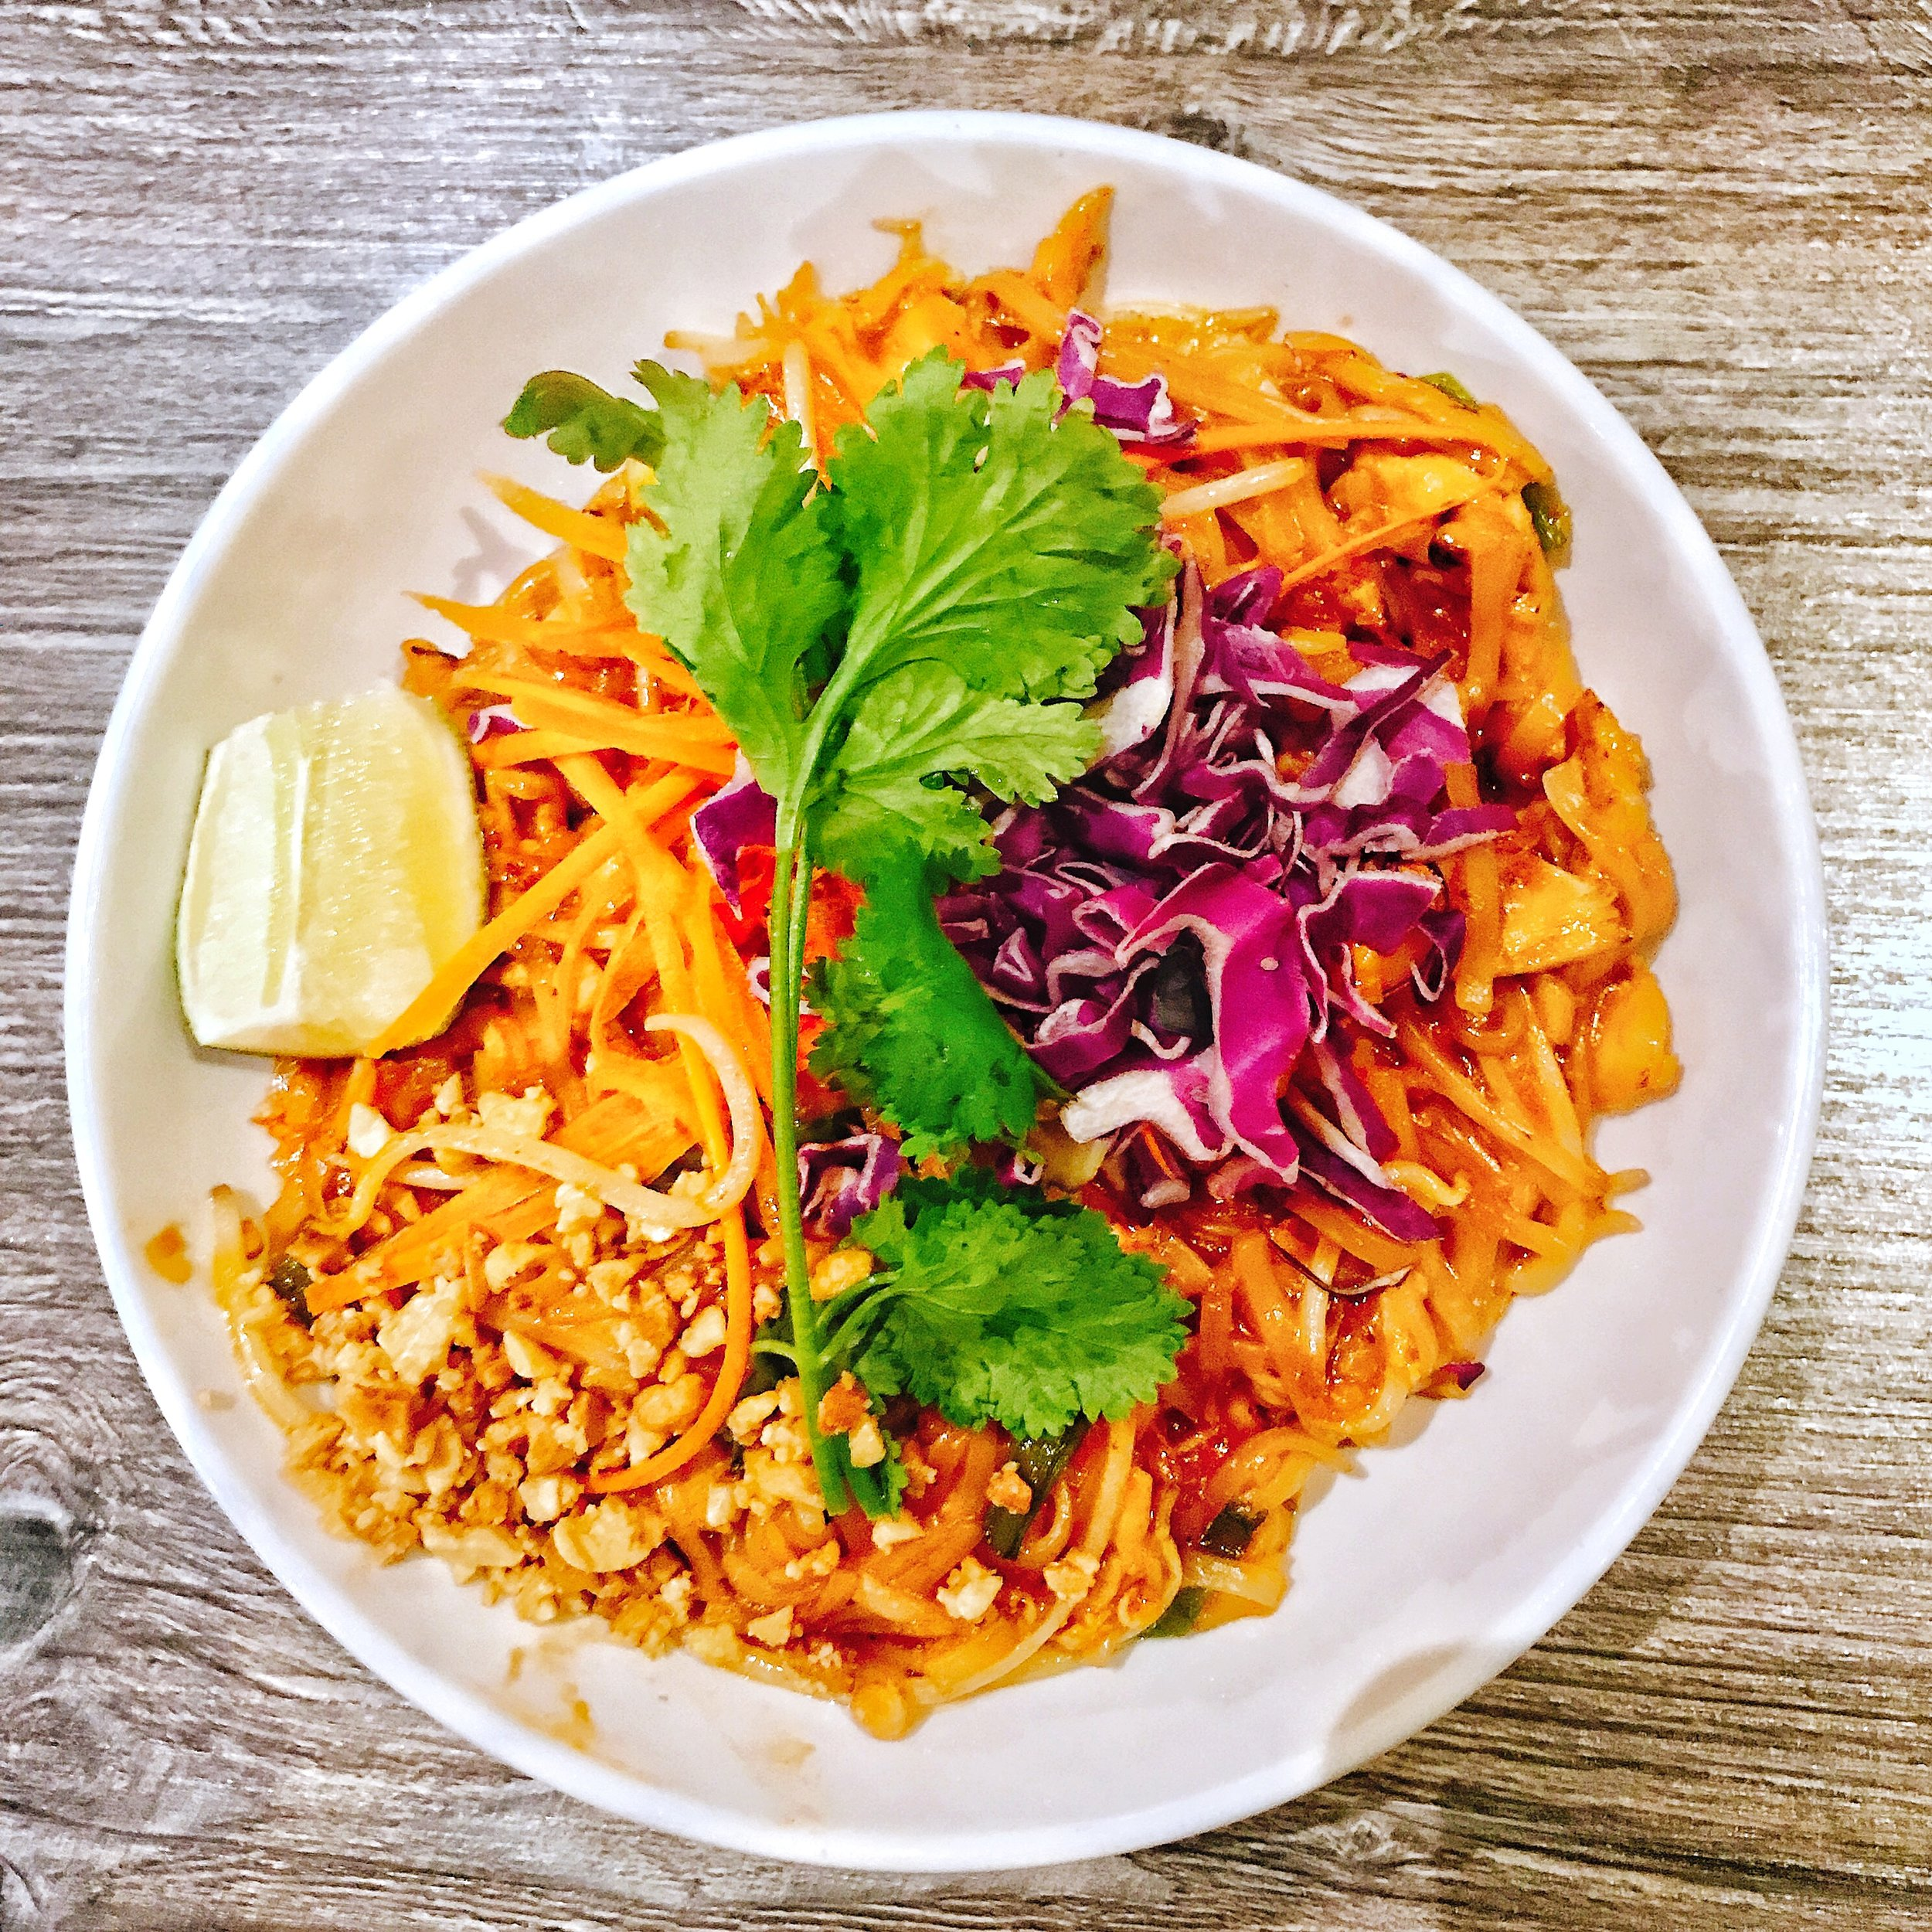 Pad Thai - Of course I had to get Pad Thai! I went with chicken, but they have options for tofu or shrimp as well. This was THE BEST Pad Thai I've had so far in Charlotte! So much so, that I ate way to much of it and then was too full to try their other items, ha! This dish features thin rice noodles with tamarind sauce, serve with bean sprouts, lime wedge, peanuts, and cilantro. Each bite is a flavor bomb. Well done!